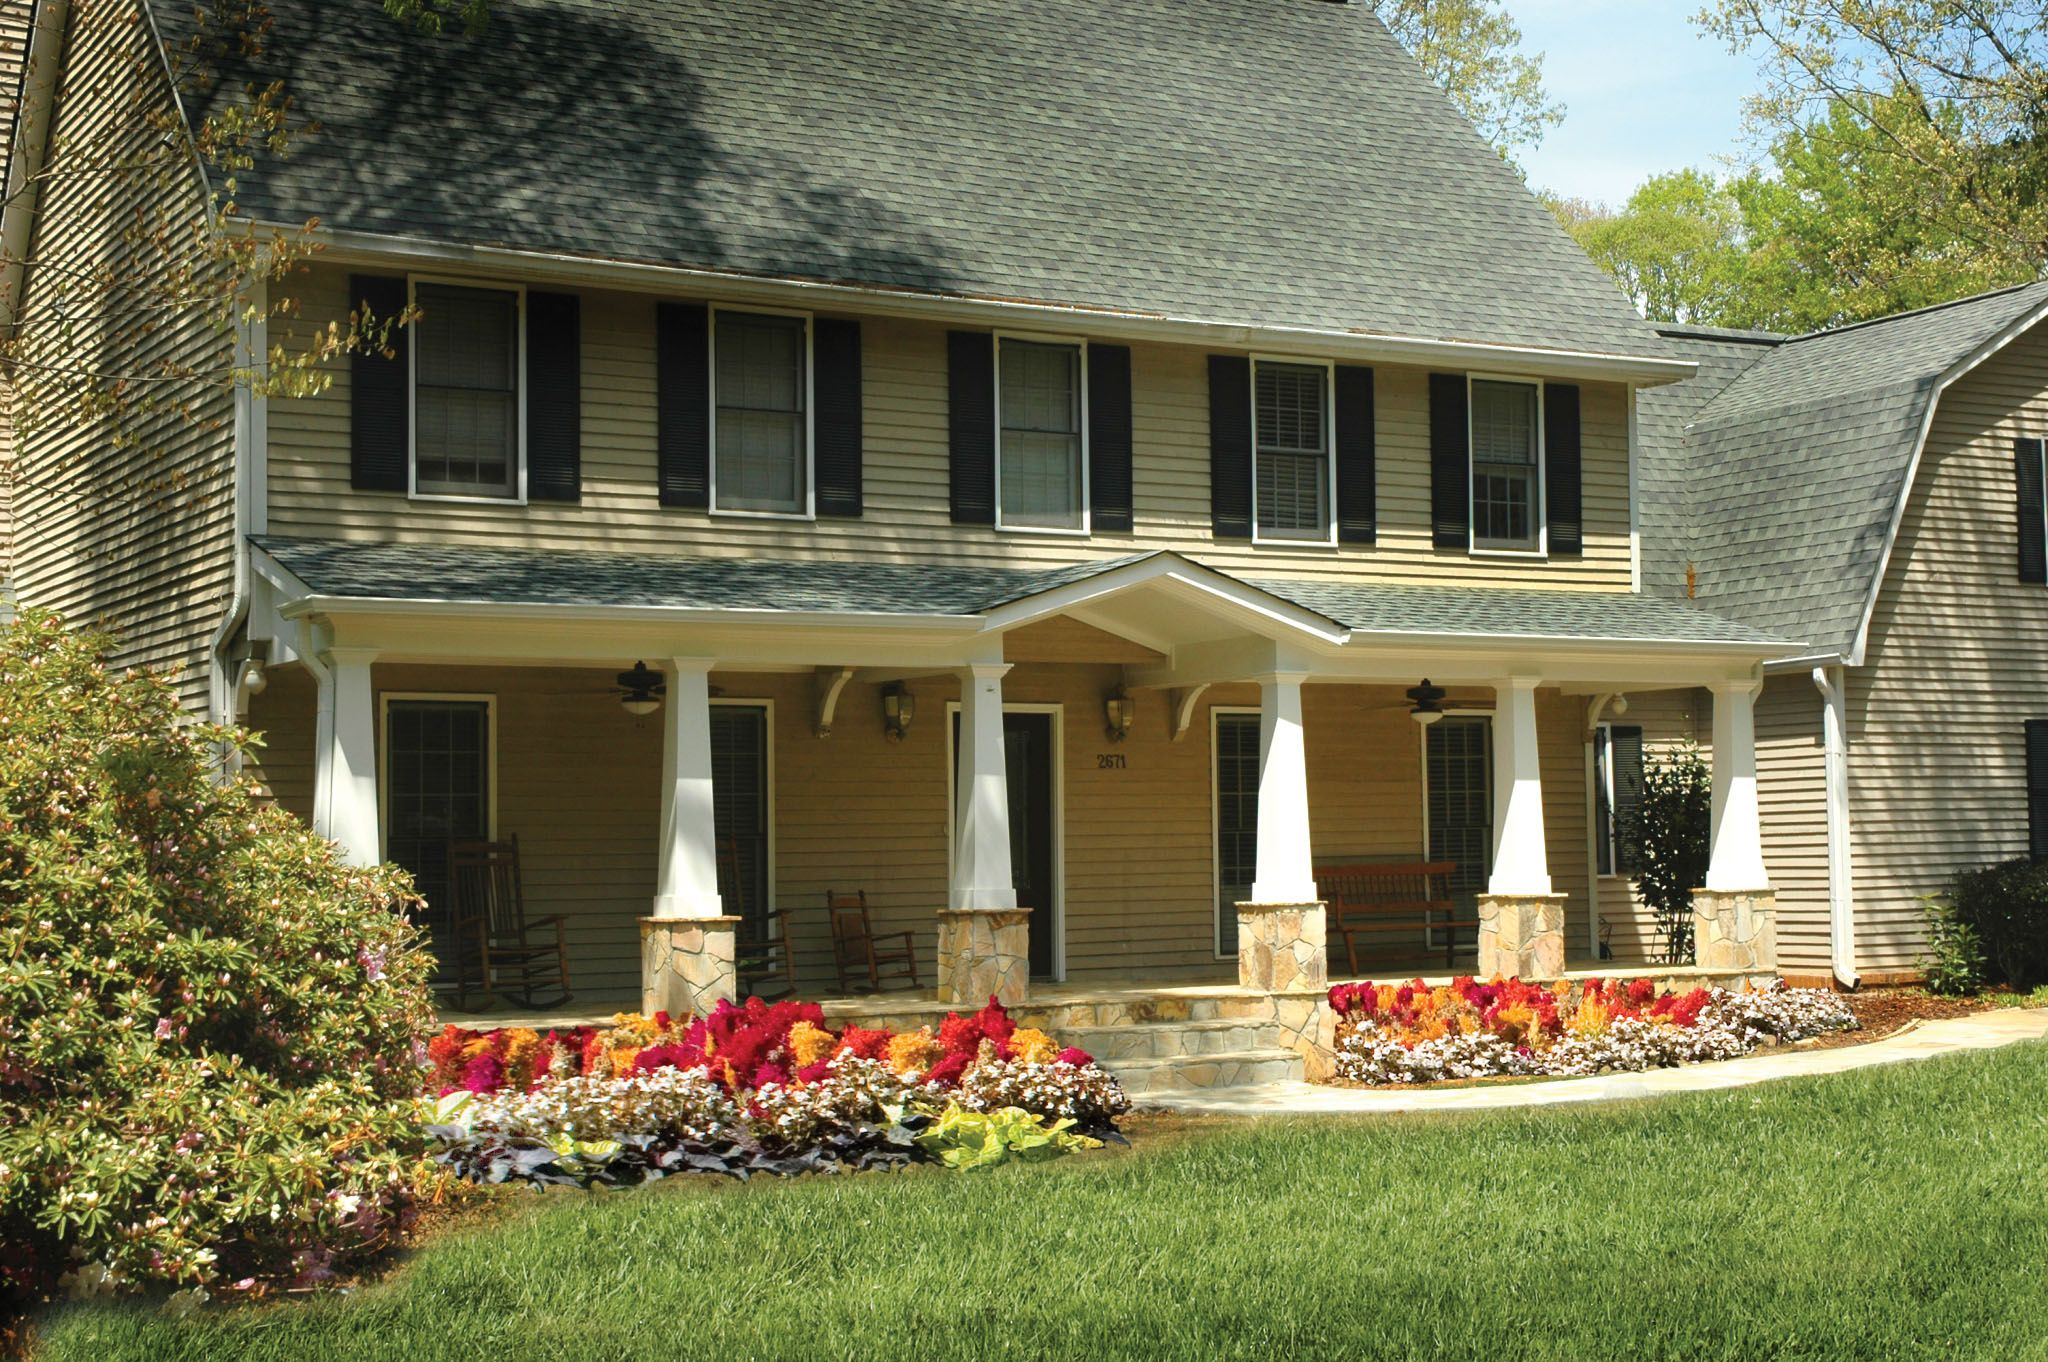 Salt Box Home Transformed With Gracious Front Porch This Project